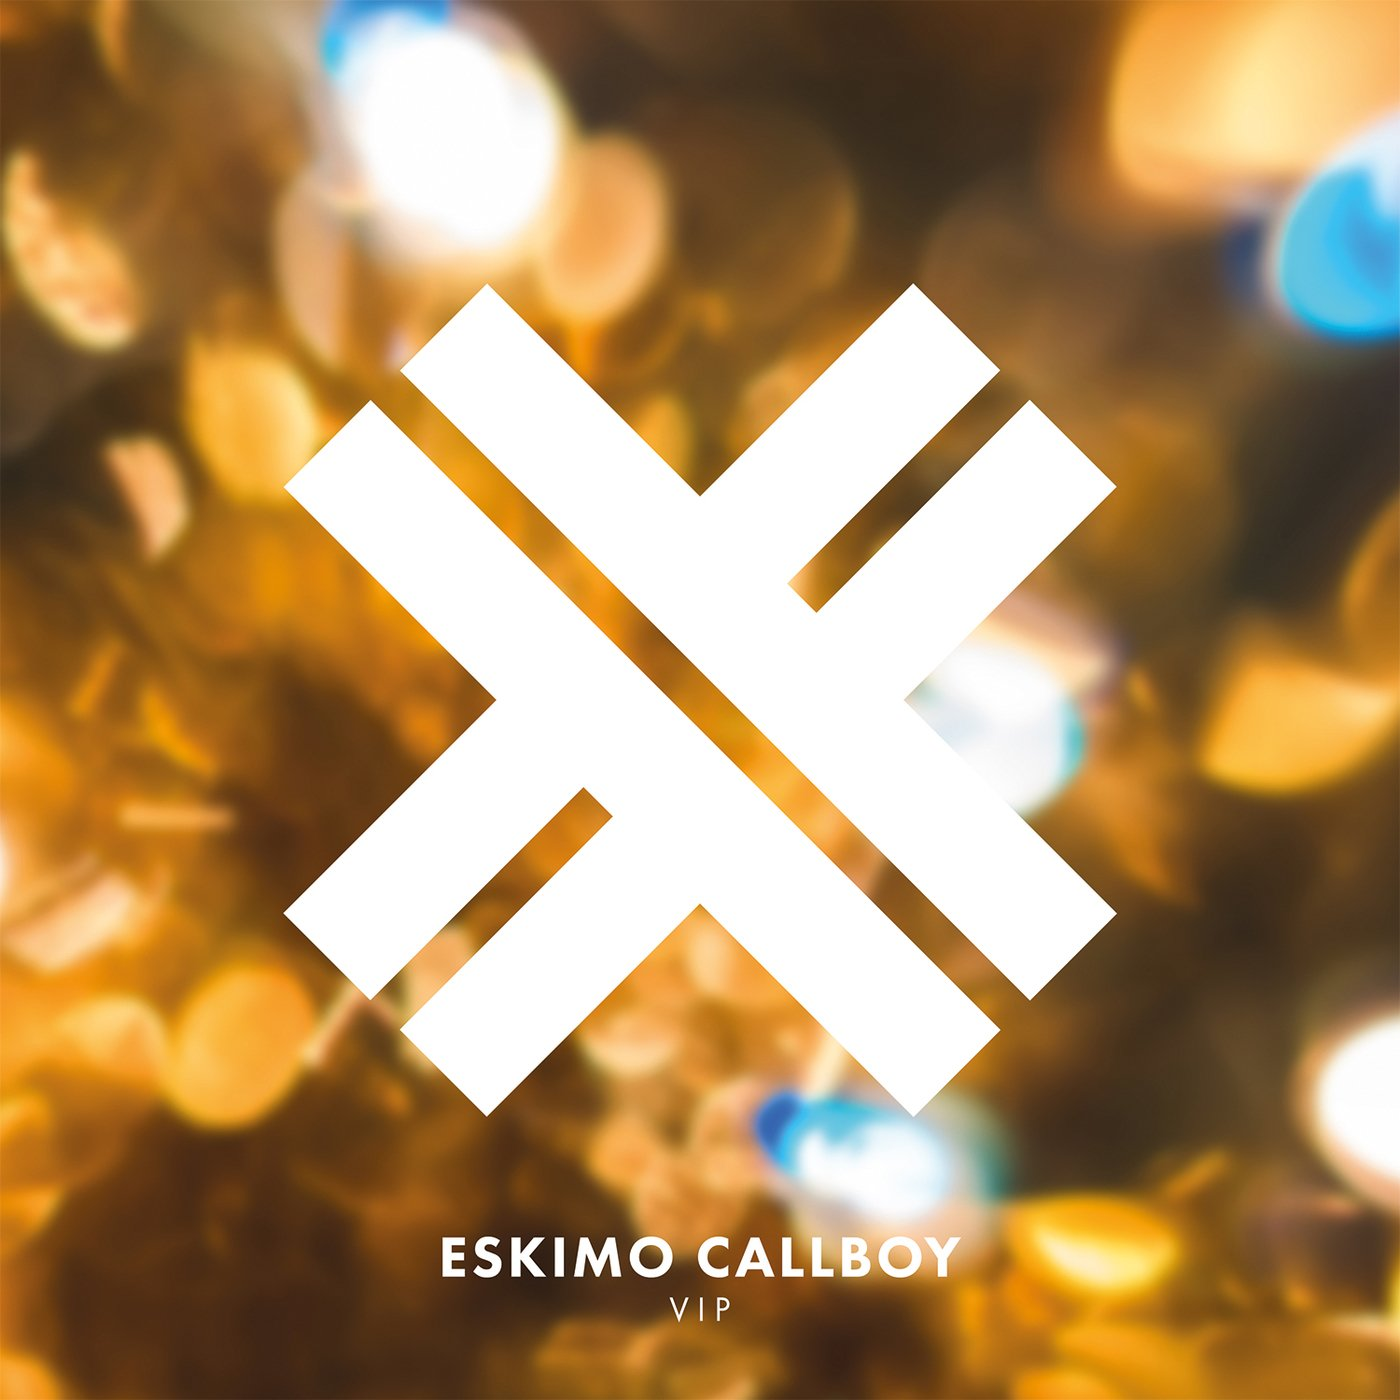 Eskimo Callboy - VIP [single] (2017)